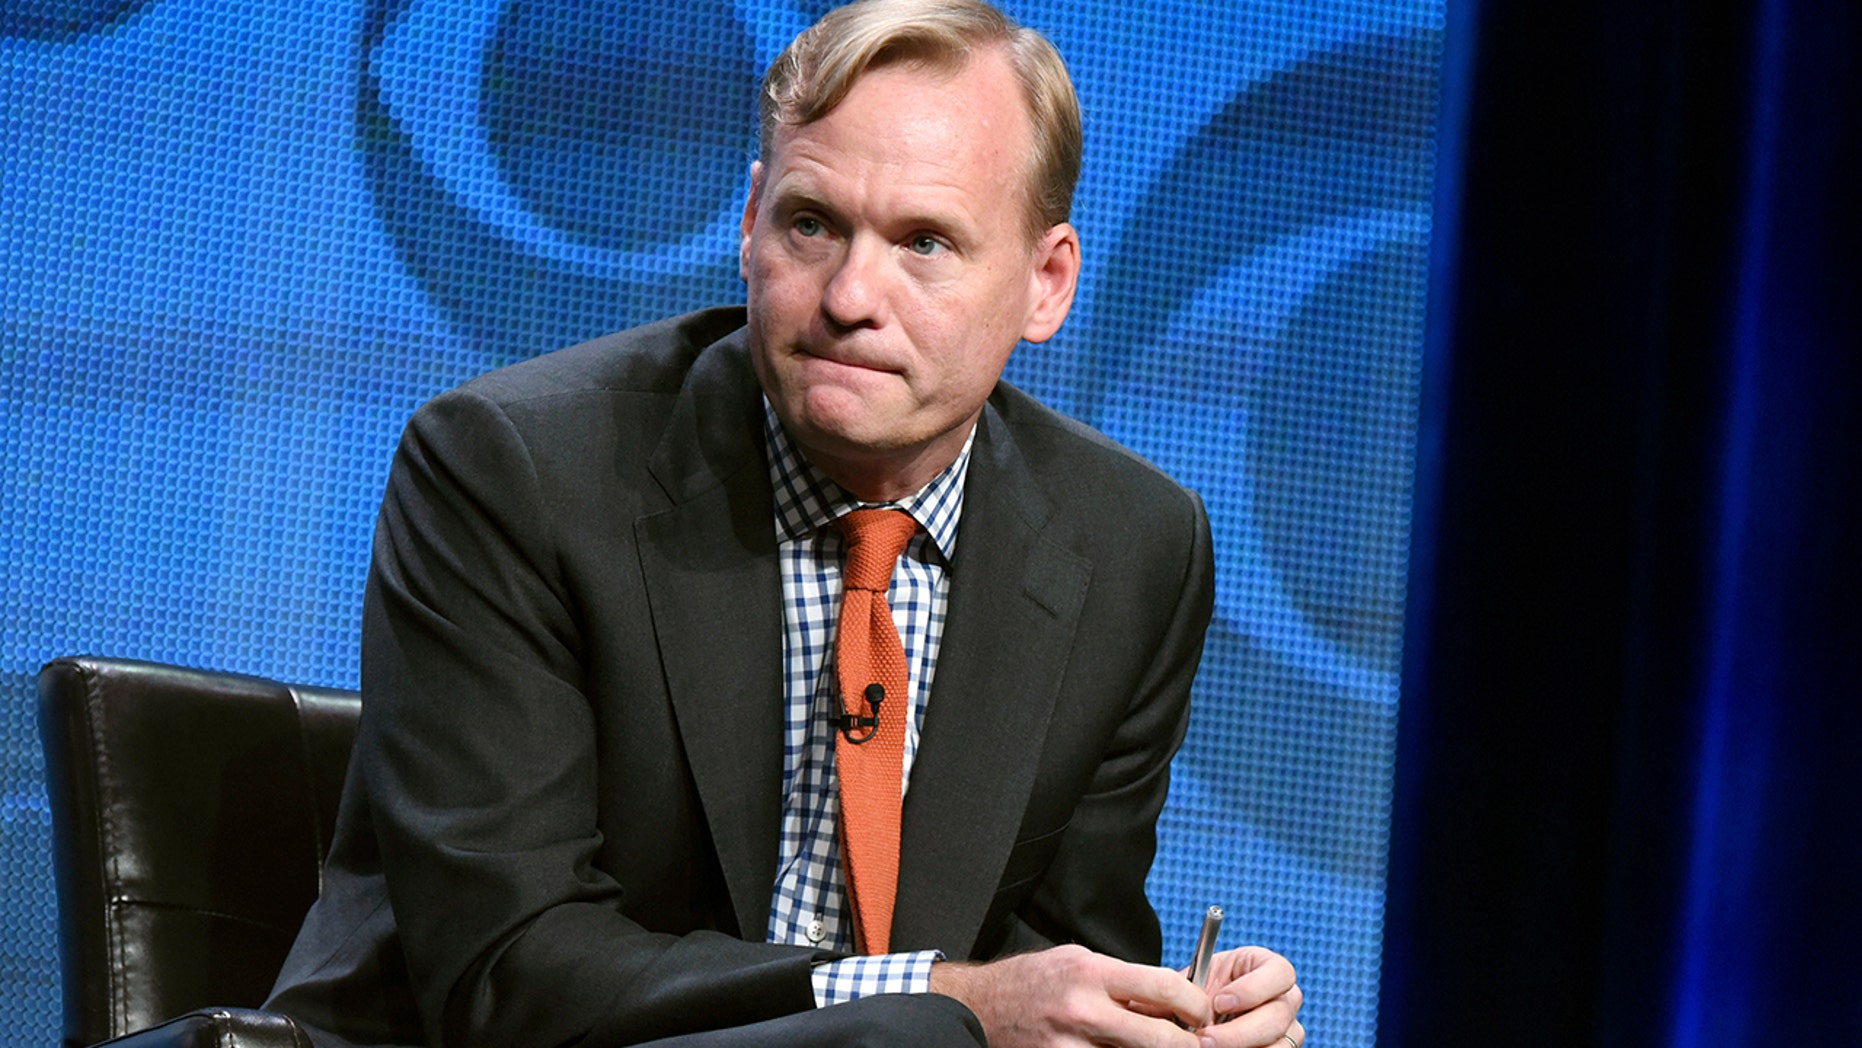 """FILE - In this Aug. 10, 2015 file photo, Political Director for CBS News, John Dickerson, participates in the CBS News panel at the CBS Summer TCA Tour in Beverly Hills, Calif.  CBS News has selected Dickerson as Charlie Rose's replacement on the """"CBS This Morning"""" program, pairing him with current anchors Gayle King and Norah O'Donnell. (Photo by Richard Shotwell/Invision/AP, File)"""